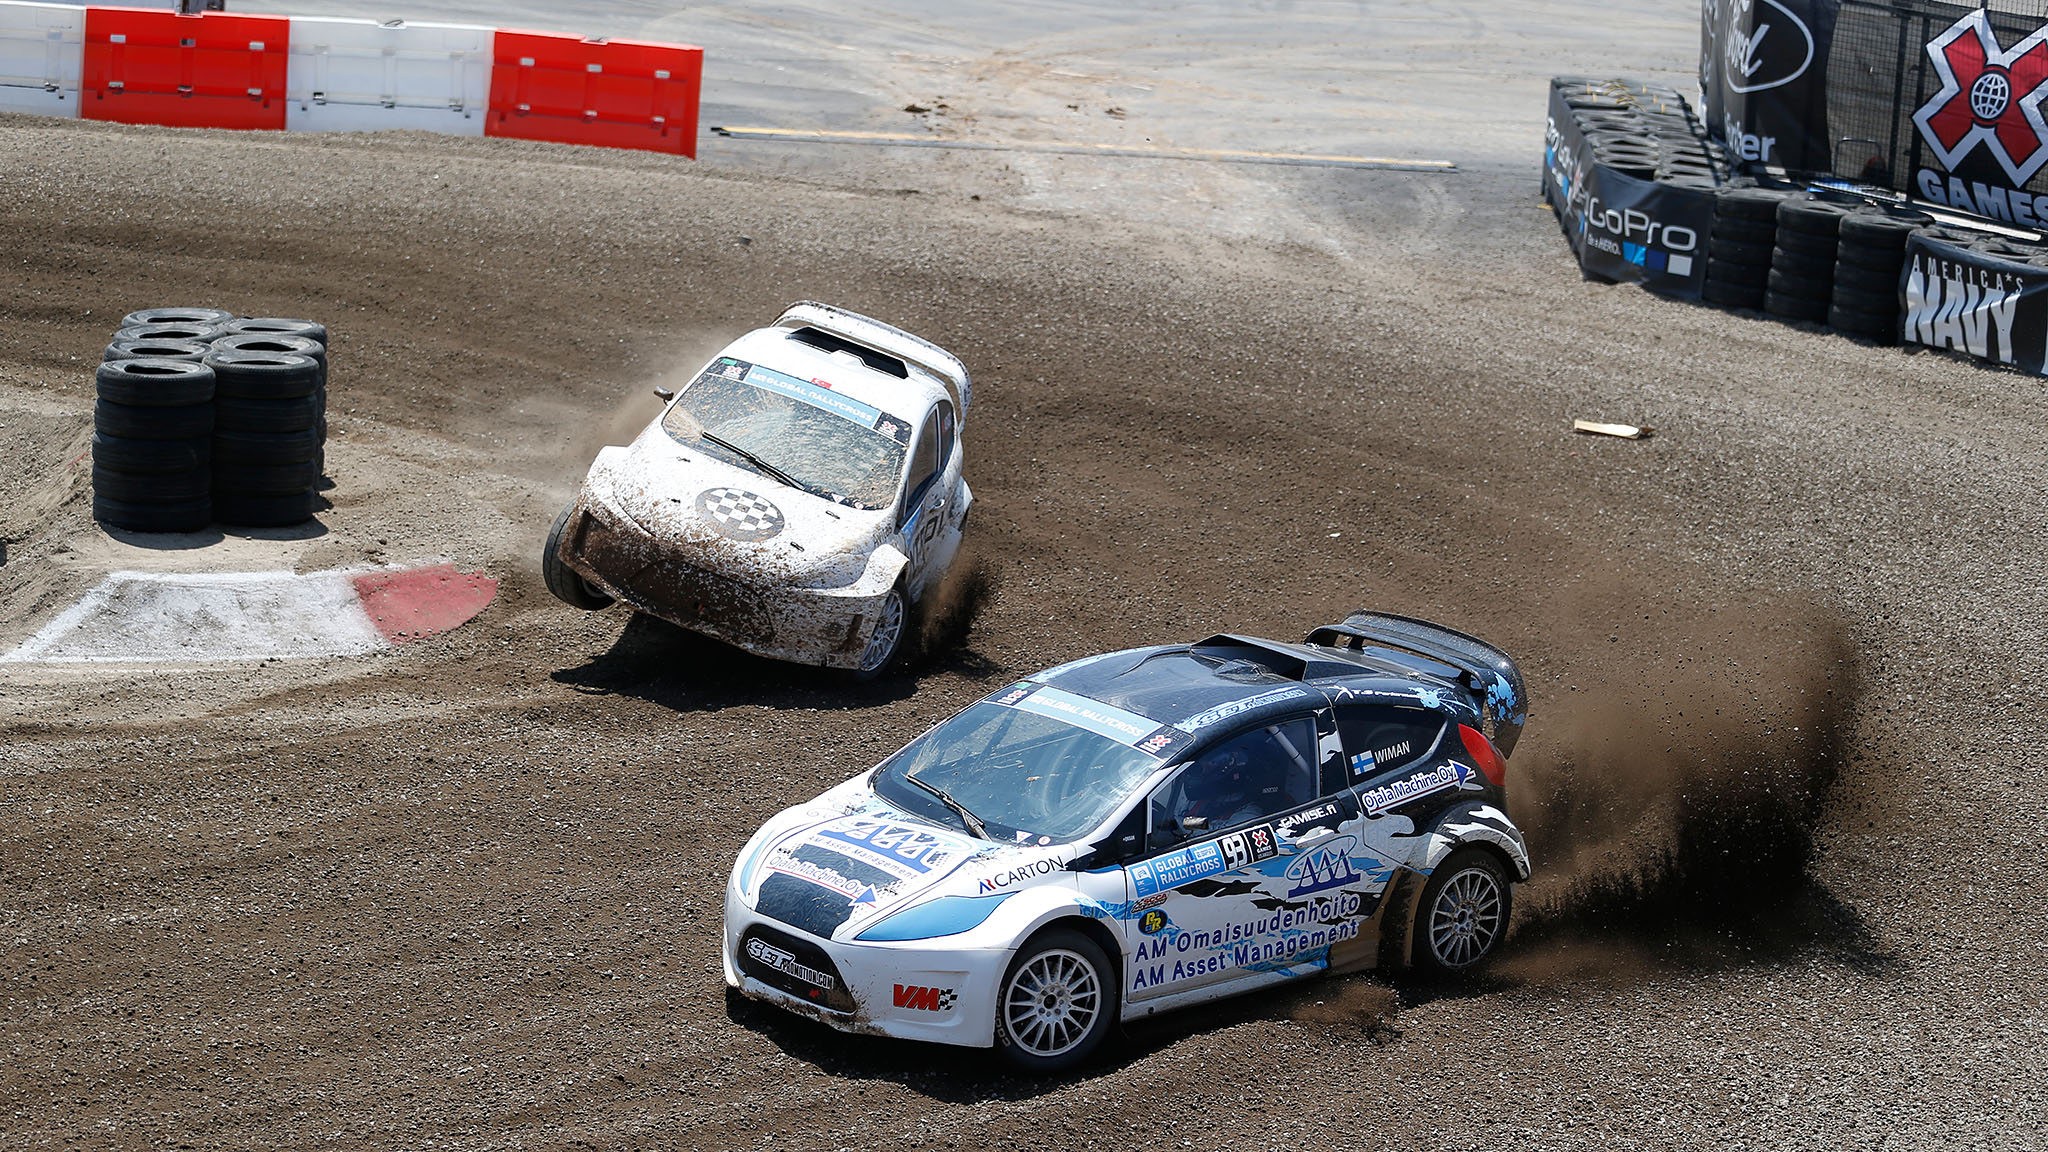 Joni Wiman laps Halid Avdagic en route to winning a gold medal Sunday in the first RallyCross Lites final in X Games history, held at the Irwindale Speedway. Avdagic finished seventh in the eight-car main event.